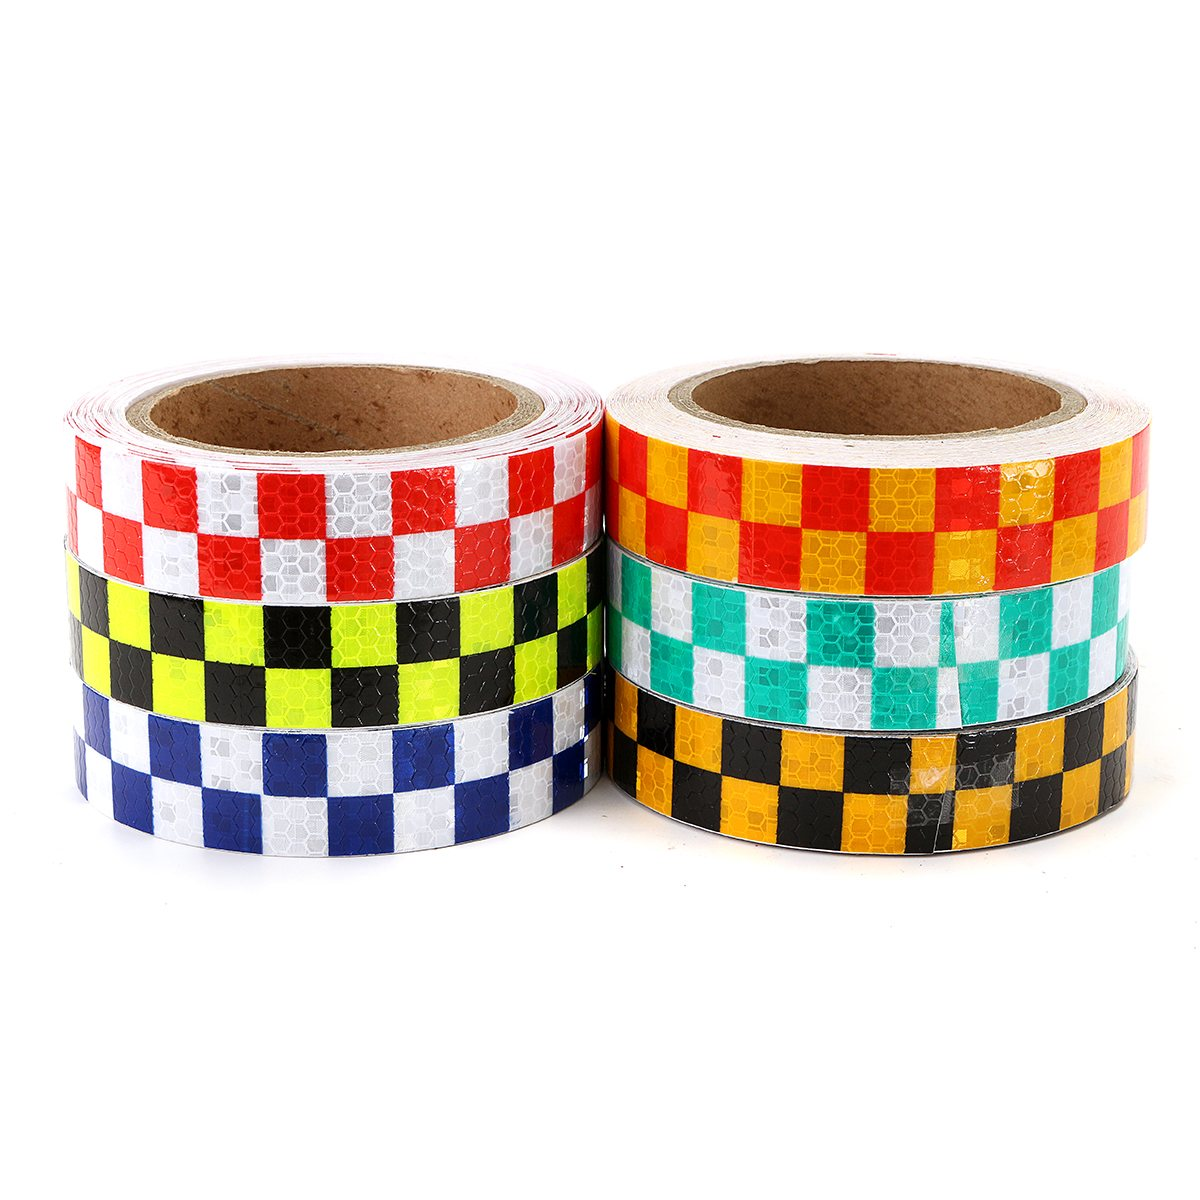 NEW Intensity Reflective Car Sticker Double Color Chequer Roll Signal PVC Workplace Safety Warning Tape газовая колонка oasis or 20w